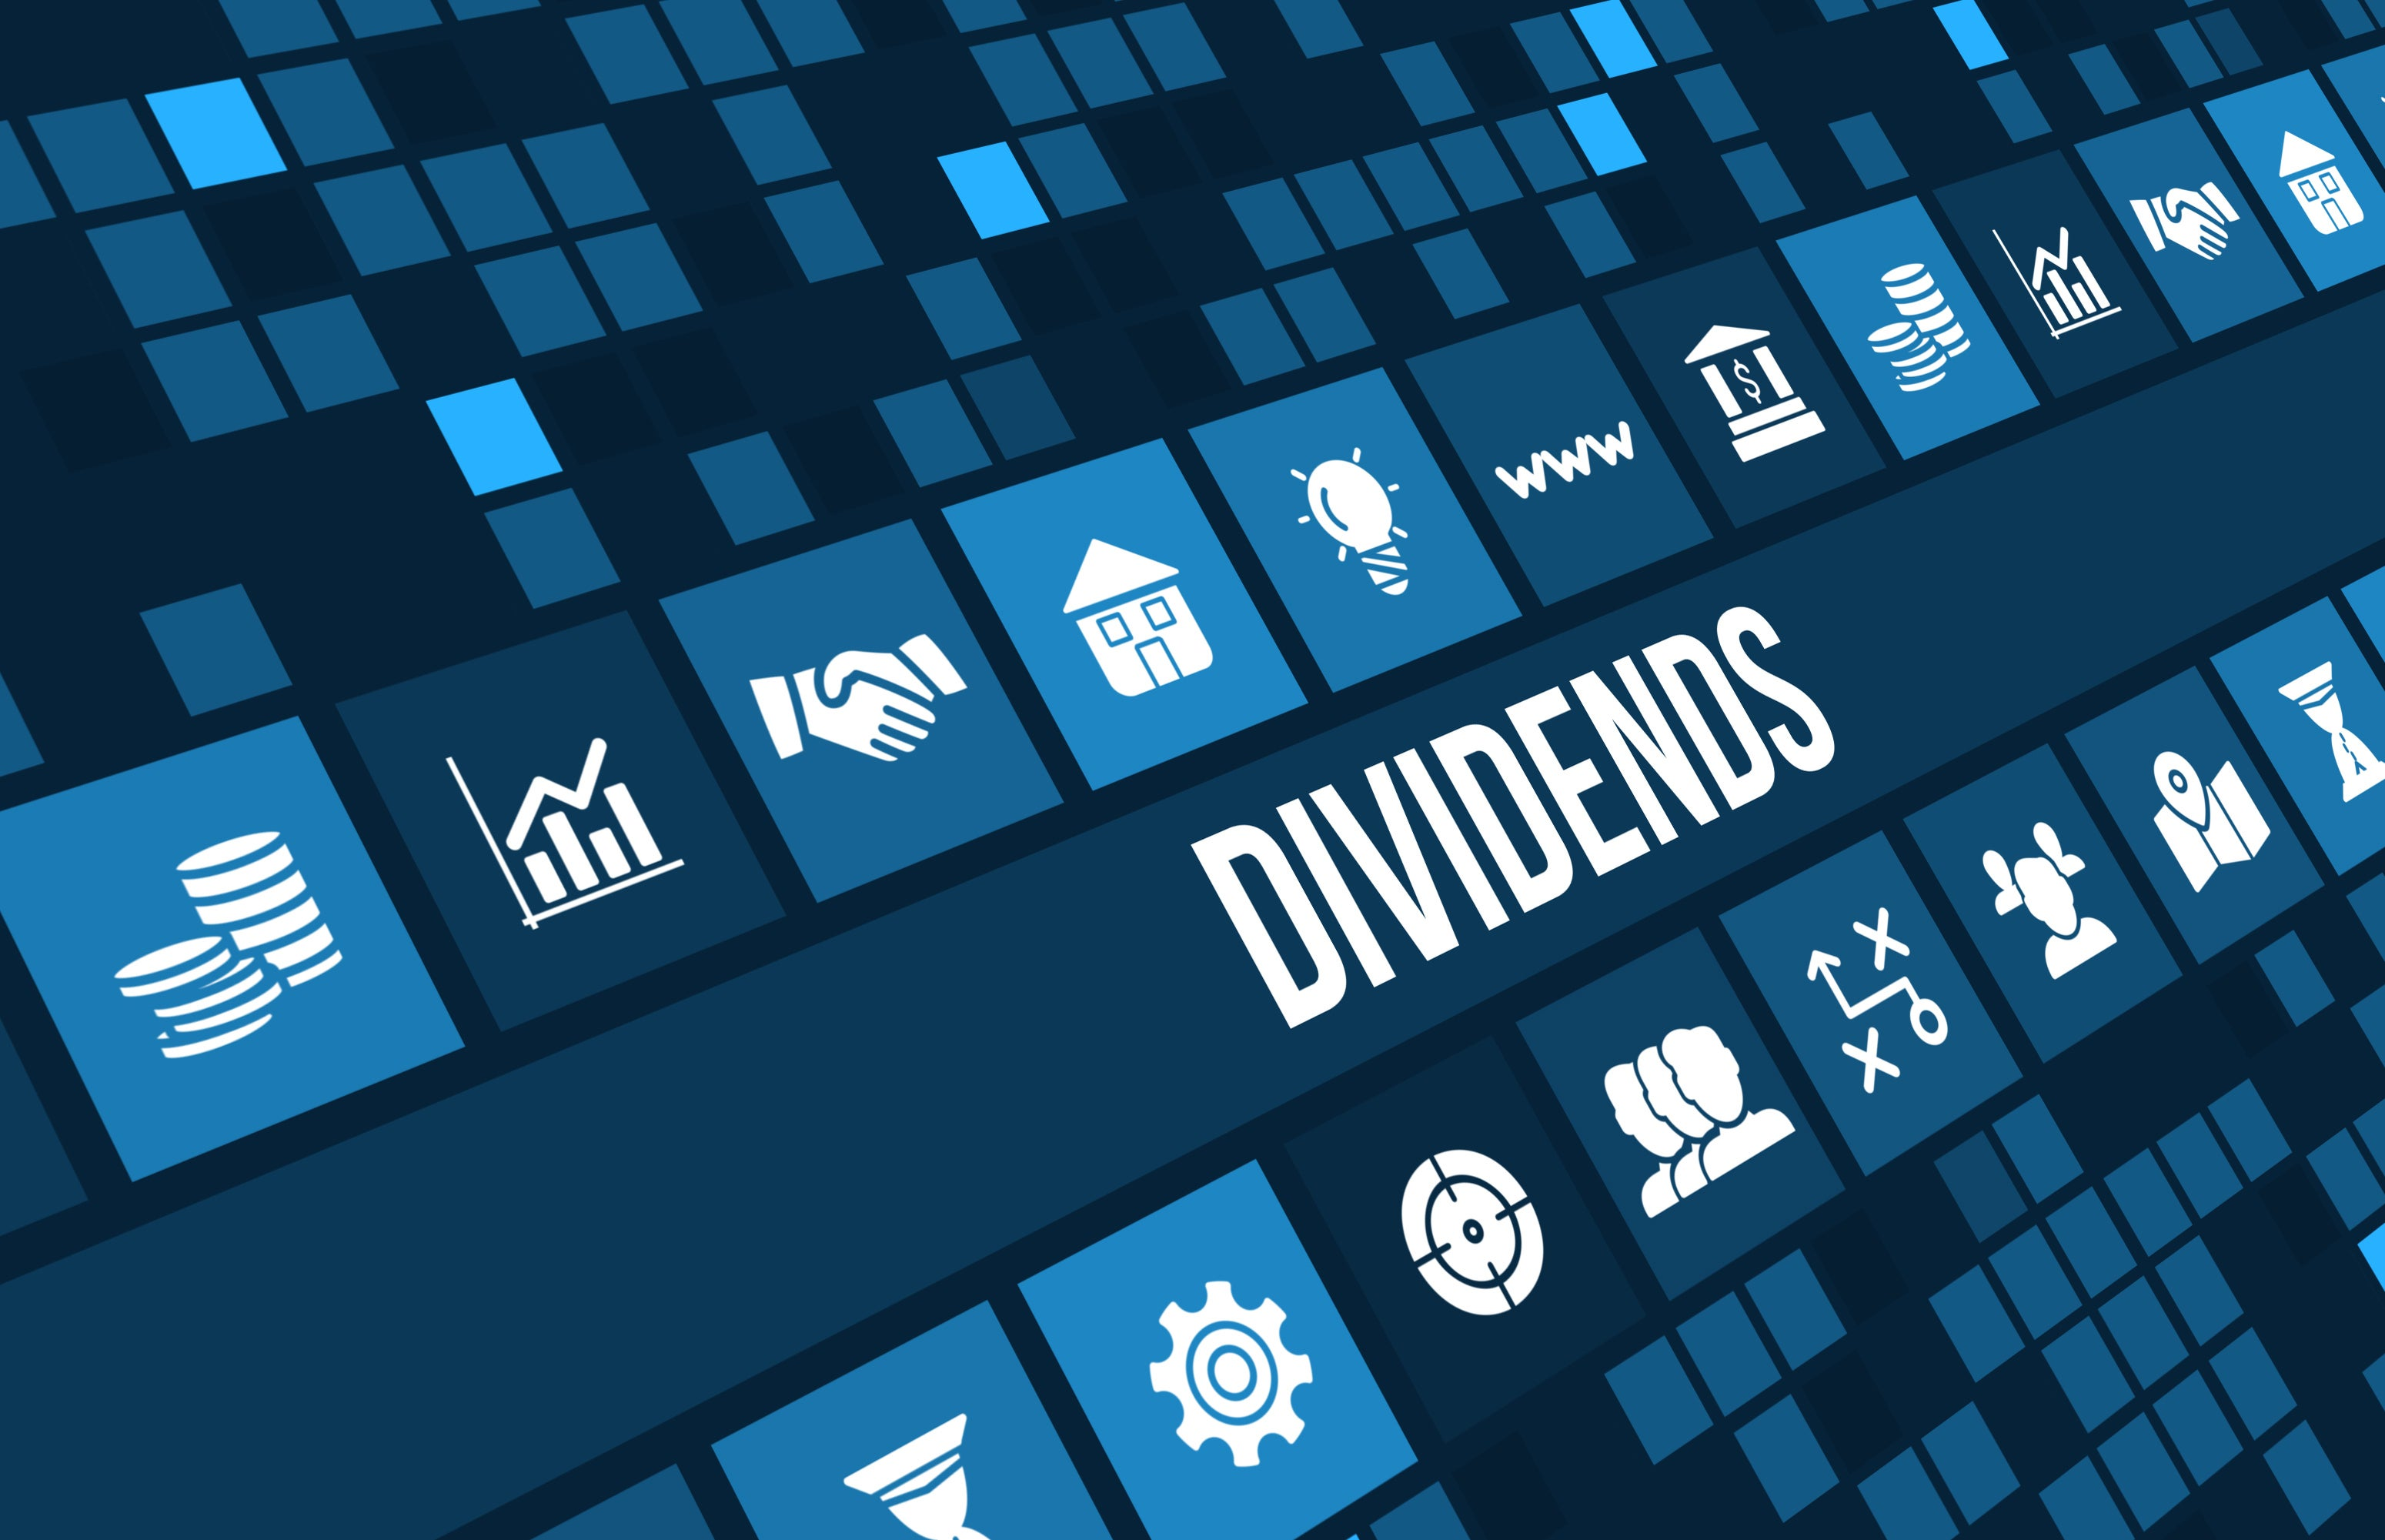 Want to Get Paid Every Month? These Dividend Stocks Are for You